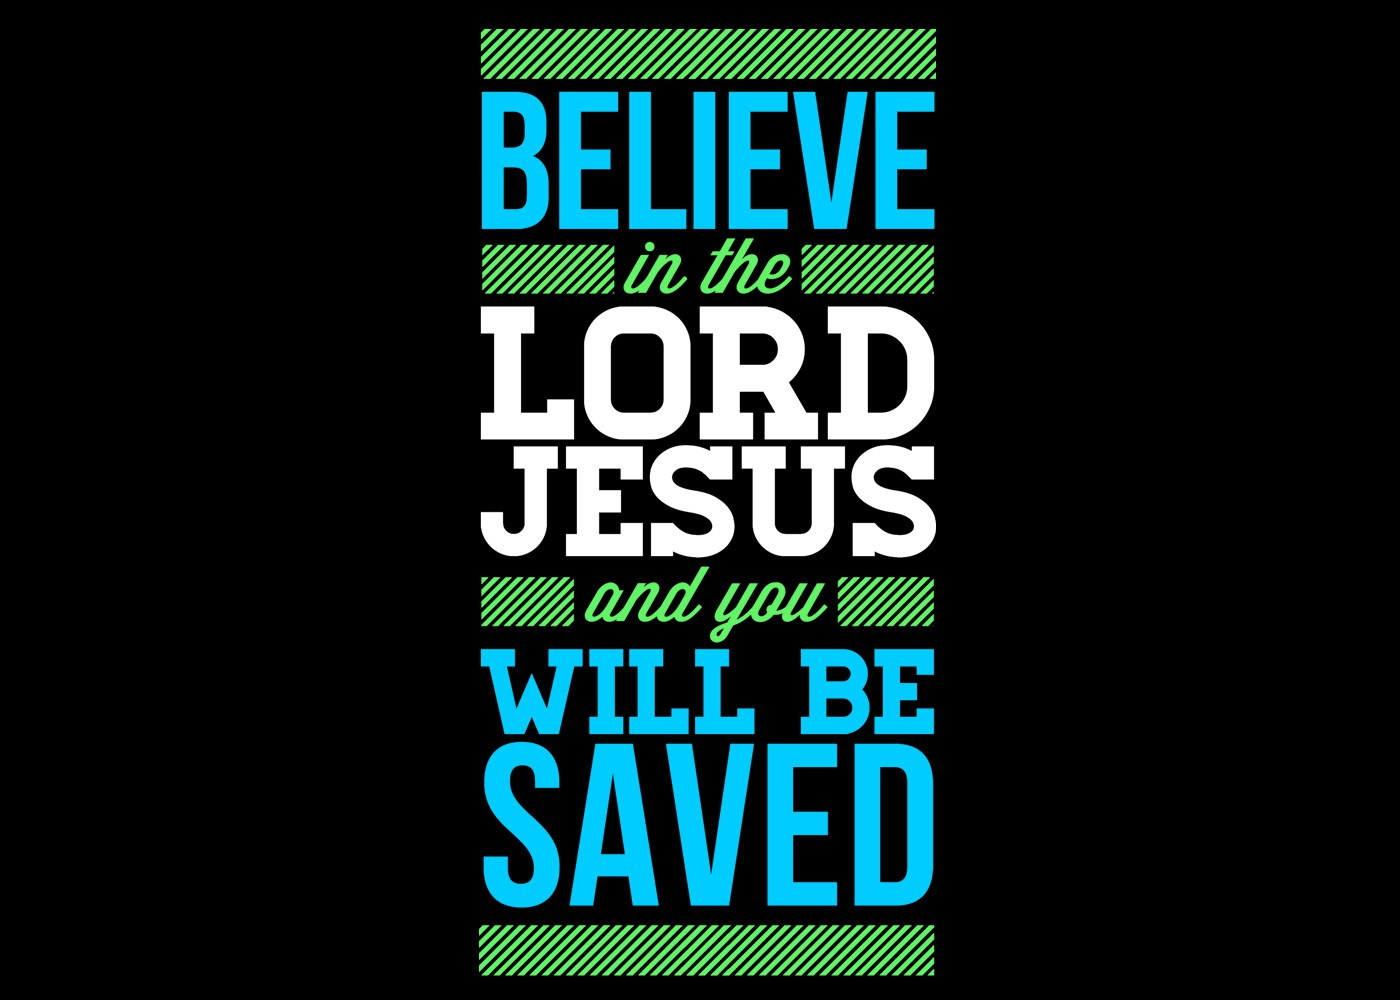 download be saved a beautiful HD wallpaper about faith in 1400x1000